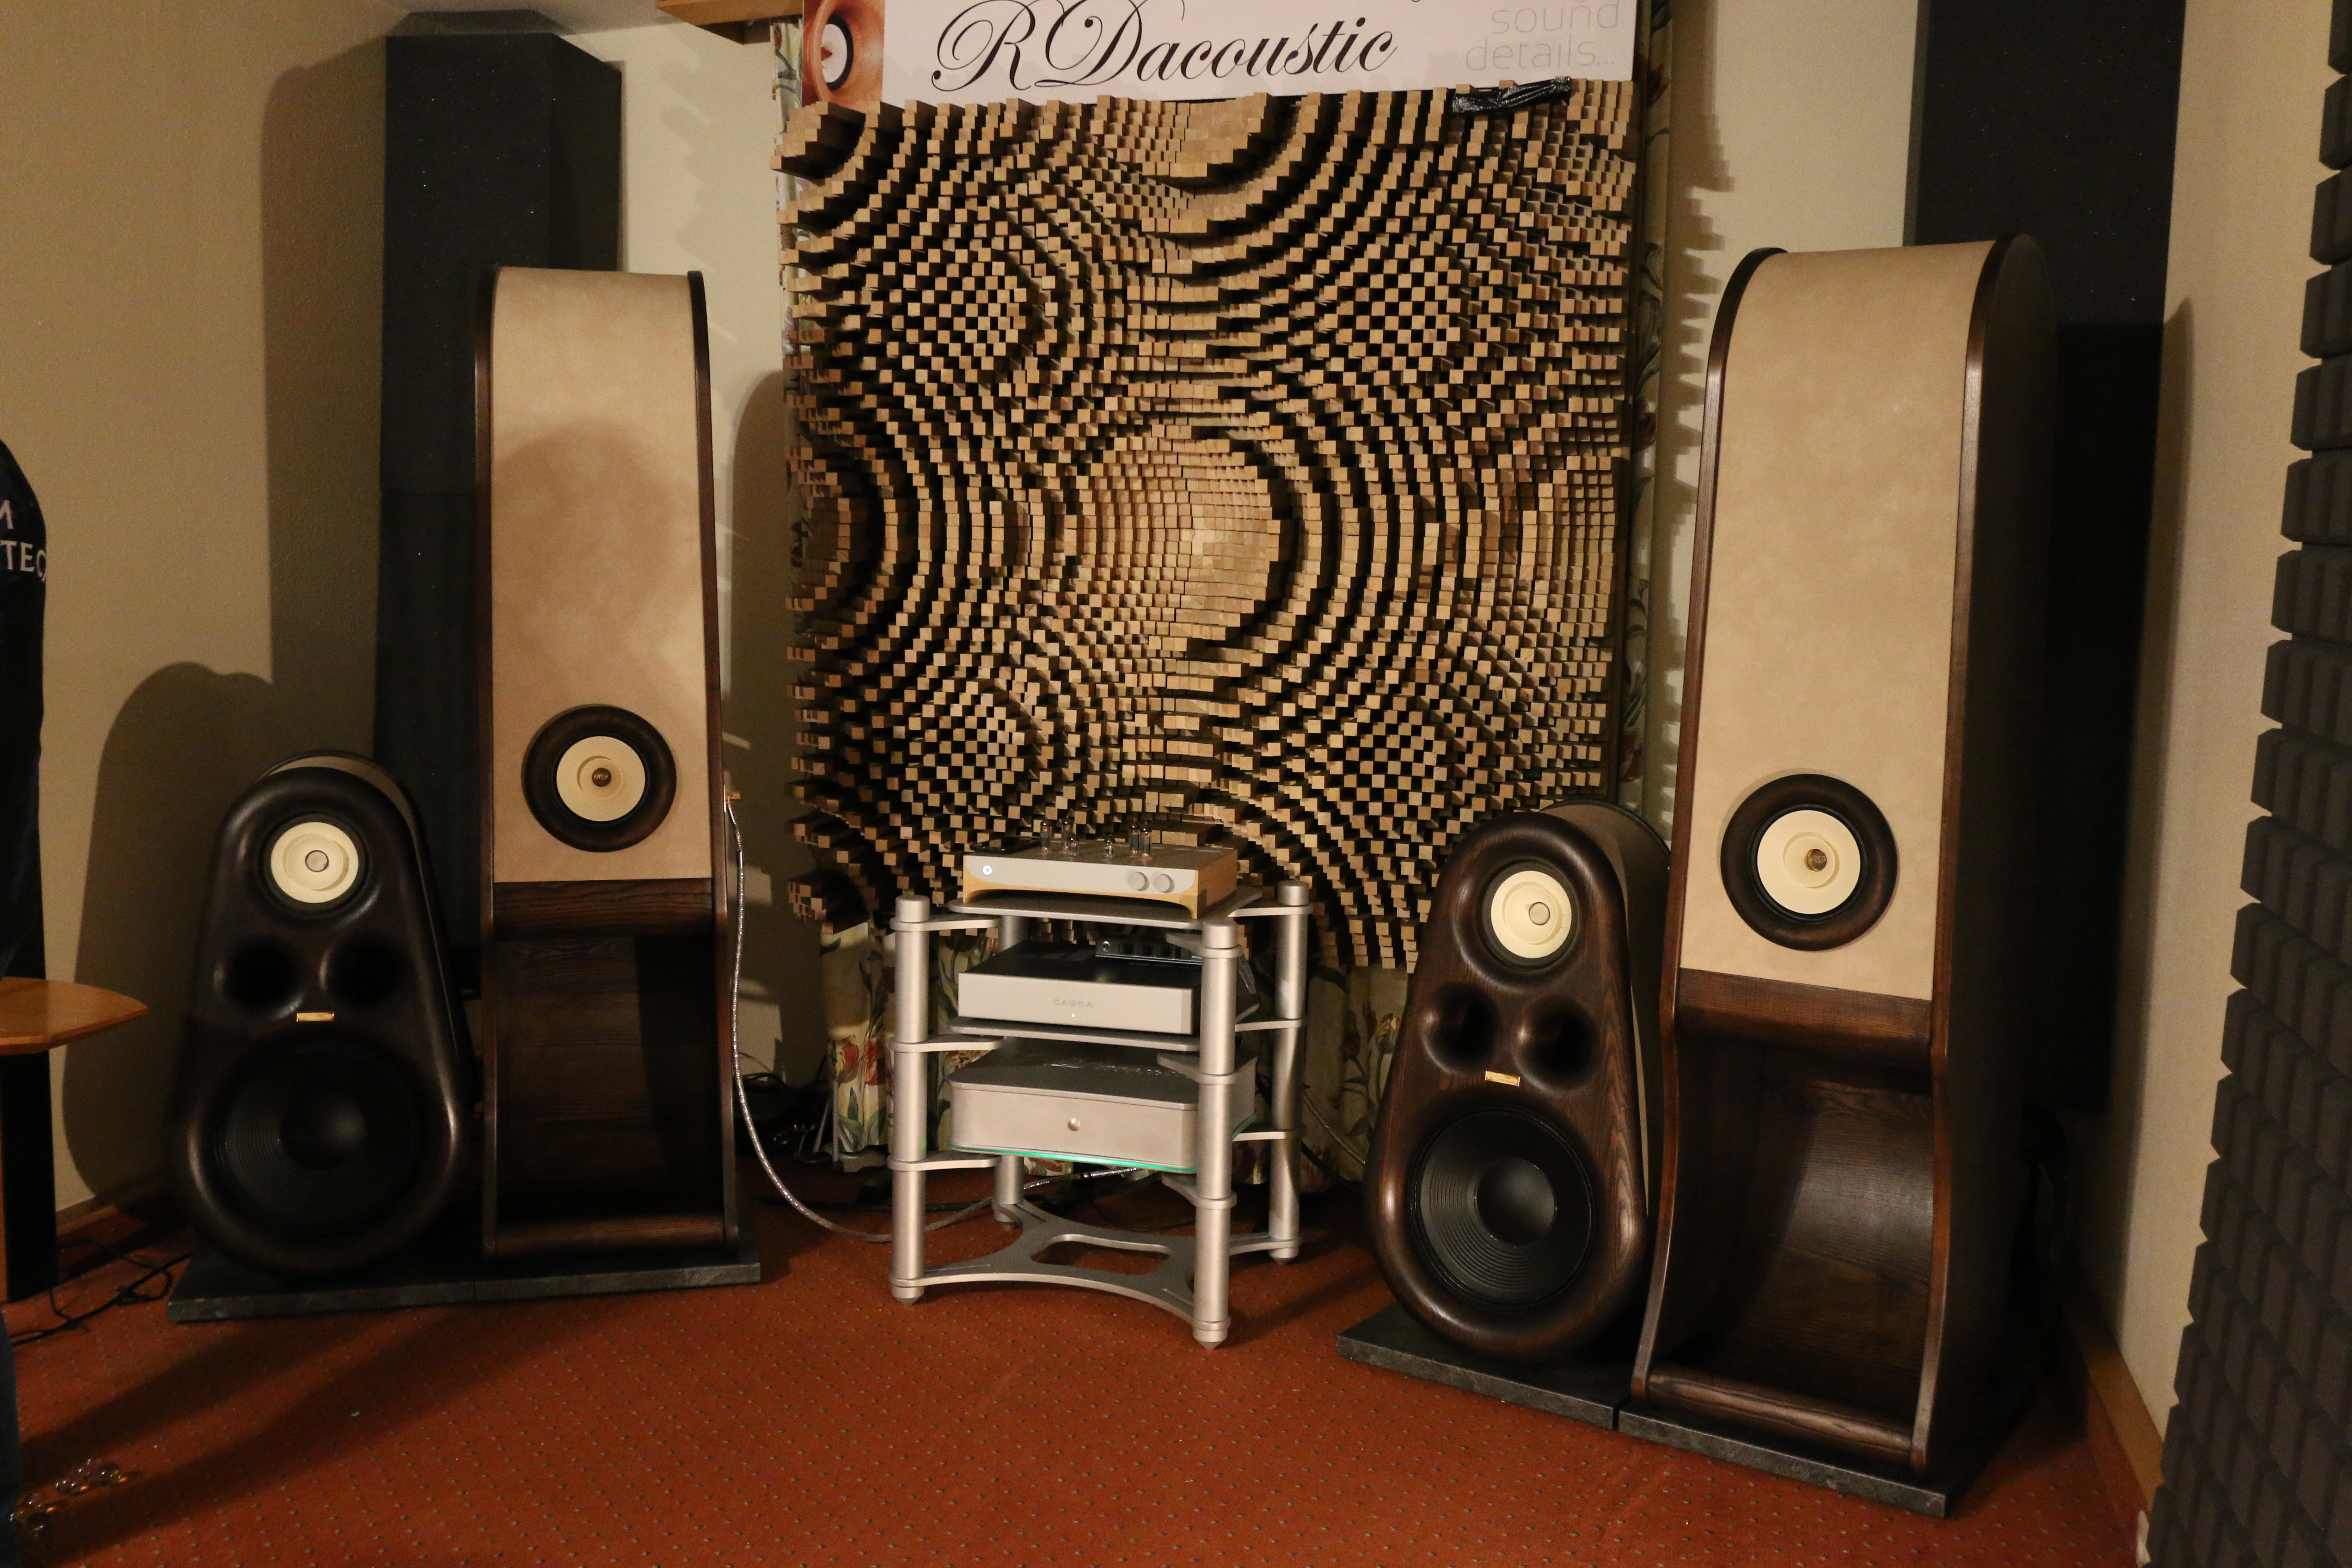 High End speakers Evolution, Euphoria speakers for true HIFI stereo, home audio, acoustic Diffuser for audiophiles